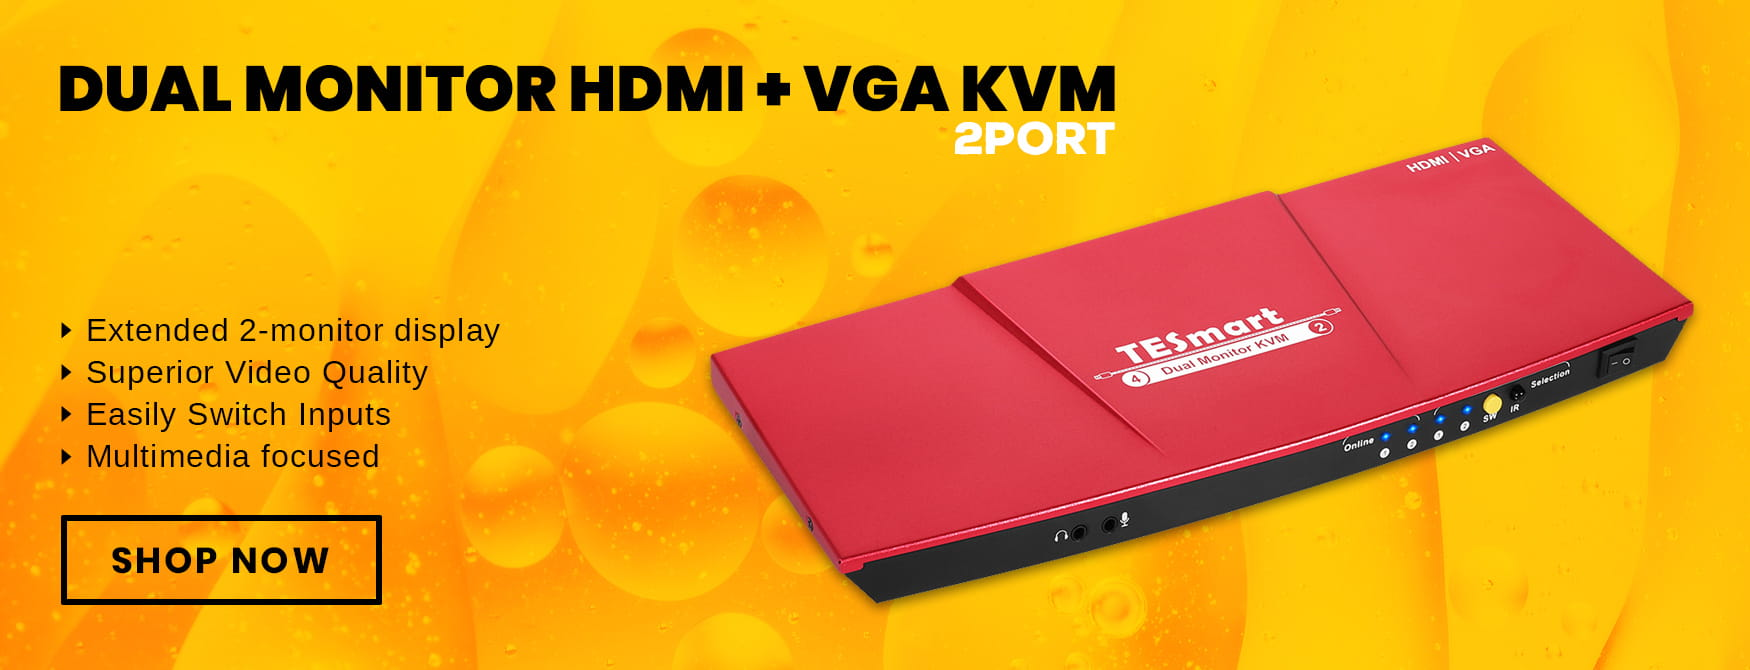 Best Hdmi Kvm Switch 2018 | Ultra Hd Kvm Switch – BuyTESmart com